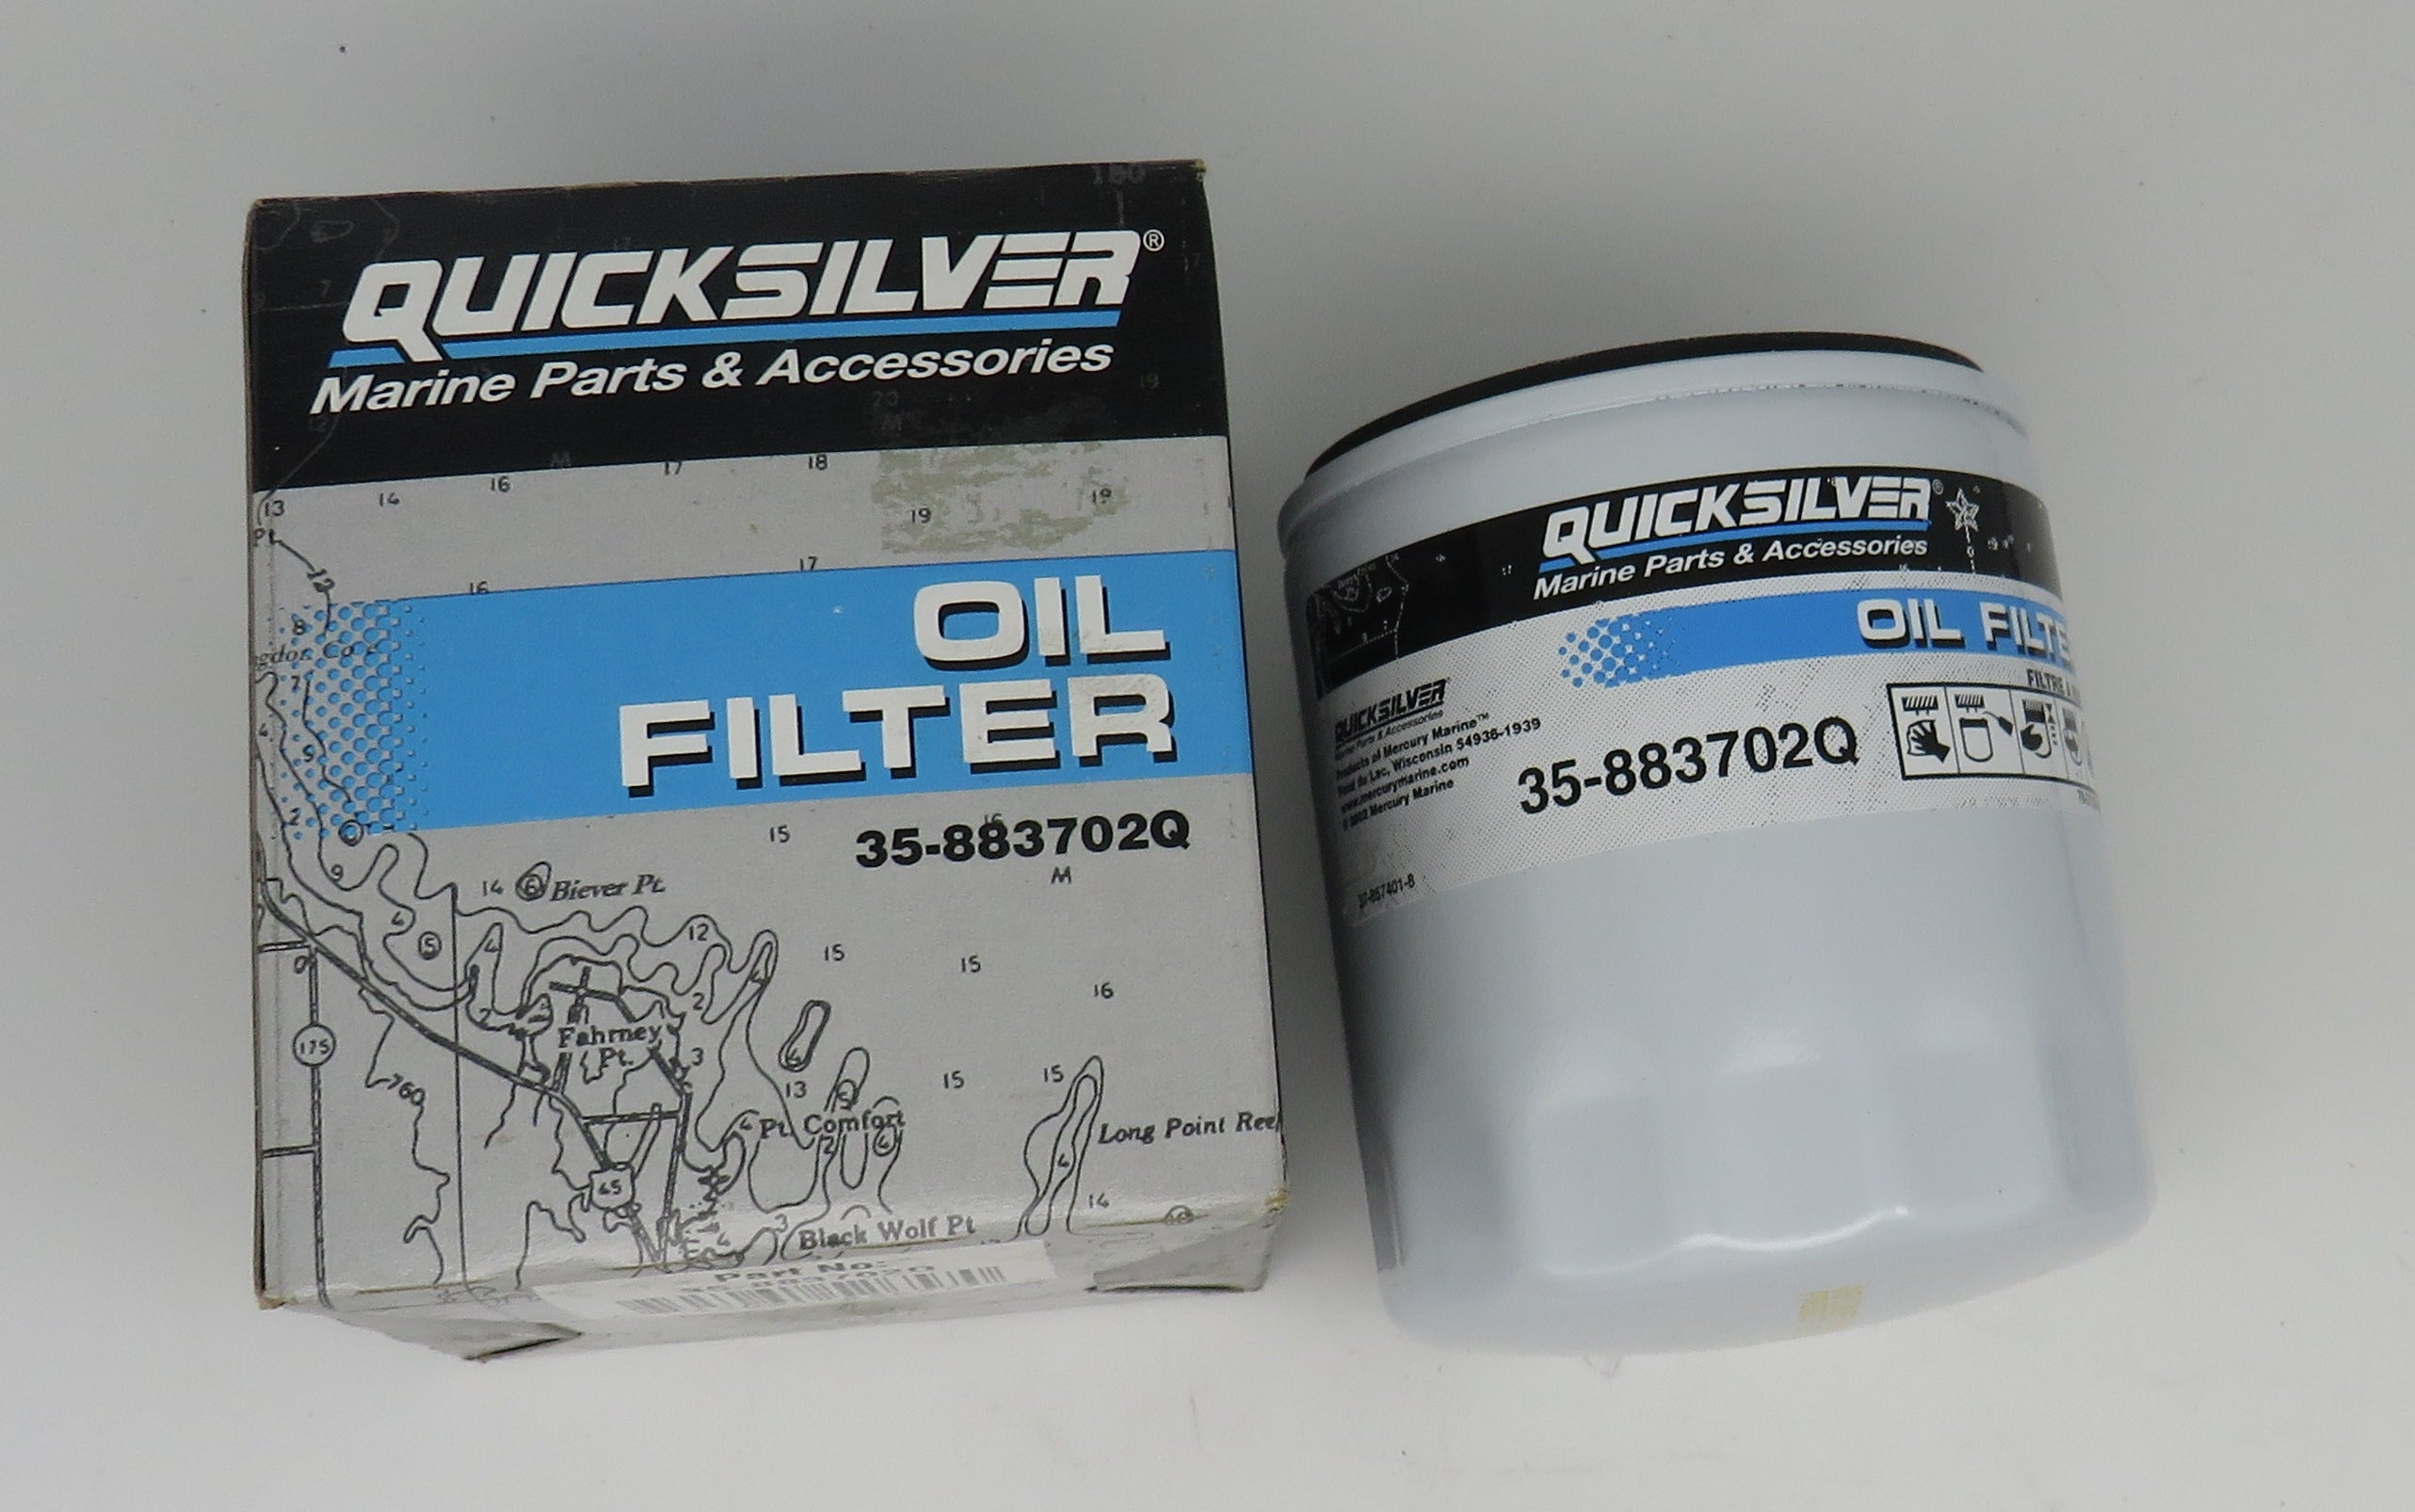 35-883702Q Quick Silver Oil Filter Supersedes 35-802884Q